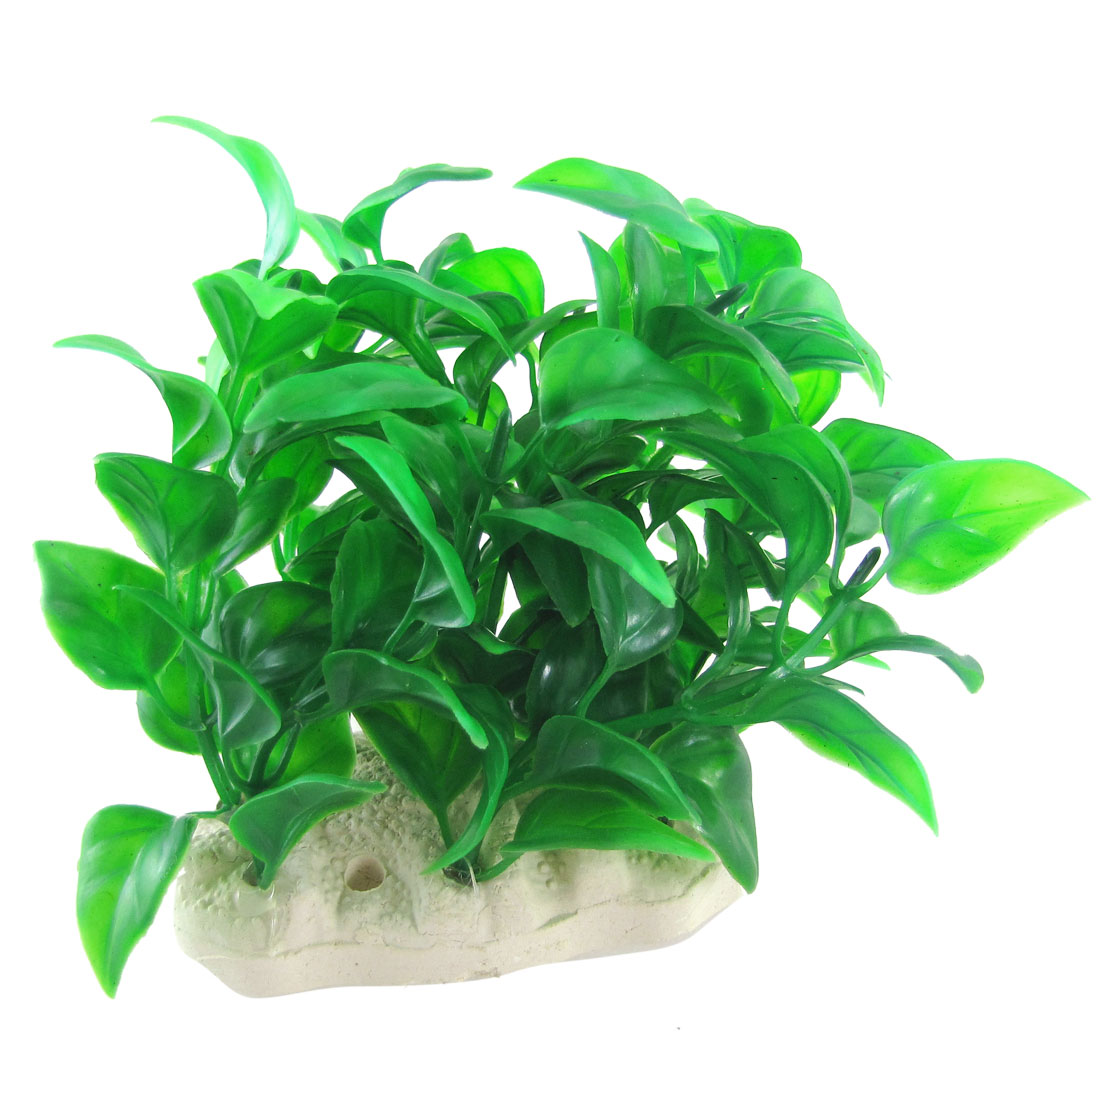 "Ceramic Base Green Leaves Plastic Plants 3.9"" for Fish Tank"